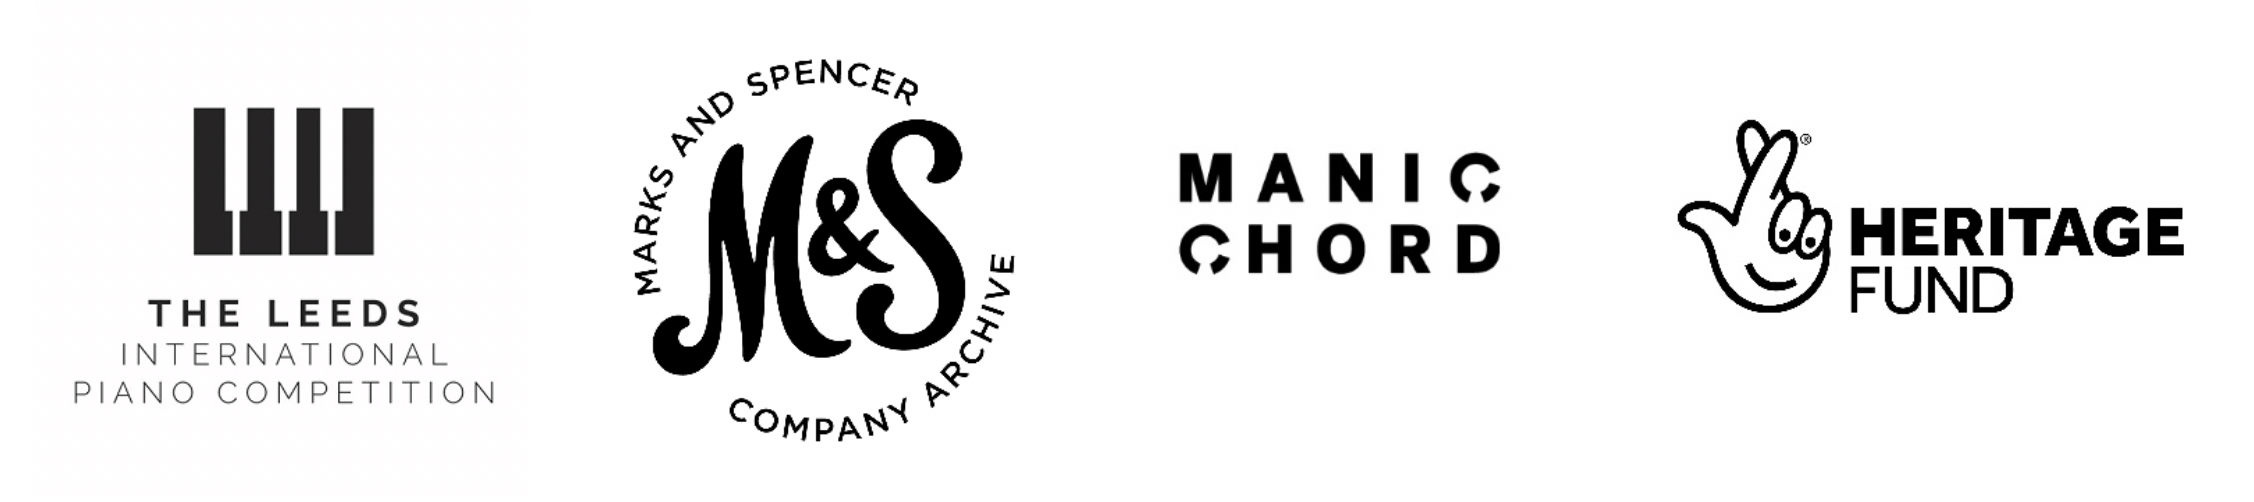 MandS Project Logos